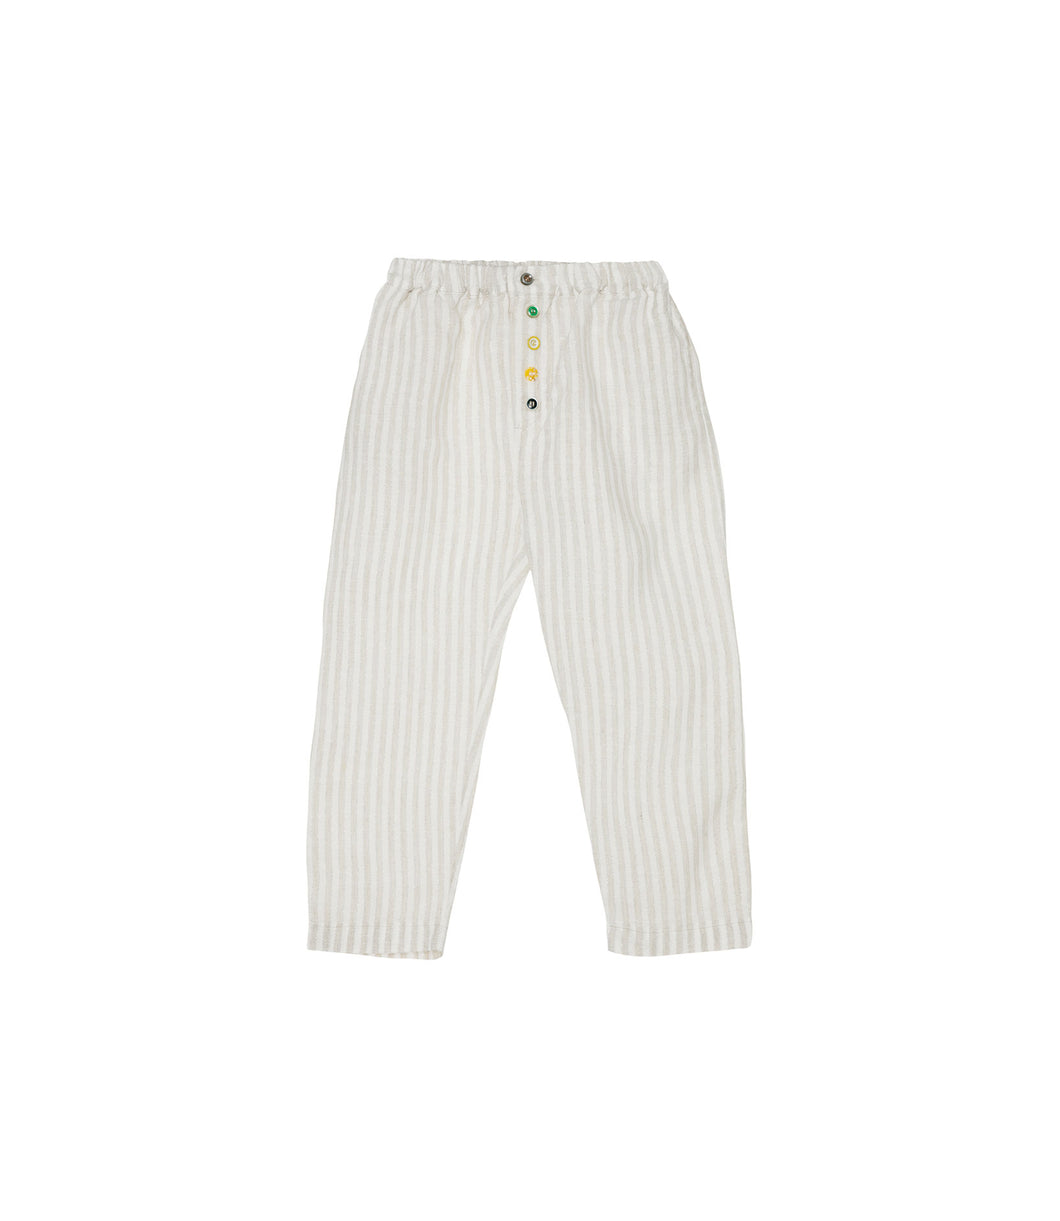 Yellow Pelota Laka Pants - Shinny Stripes 3Y, 4Y, 6Y